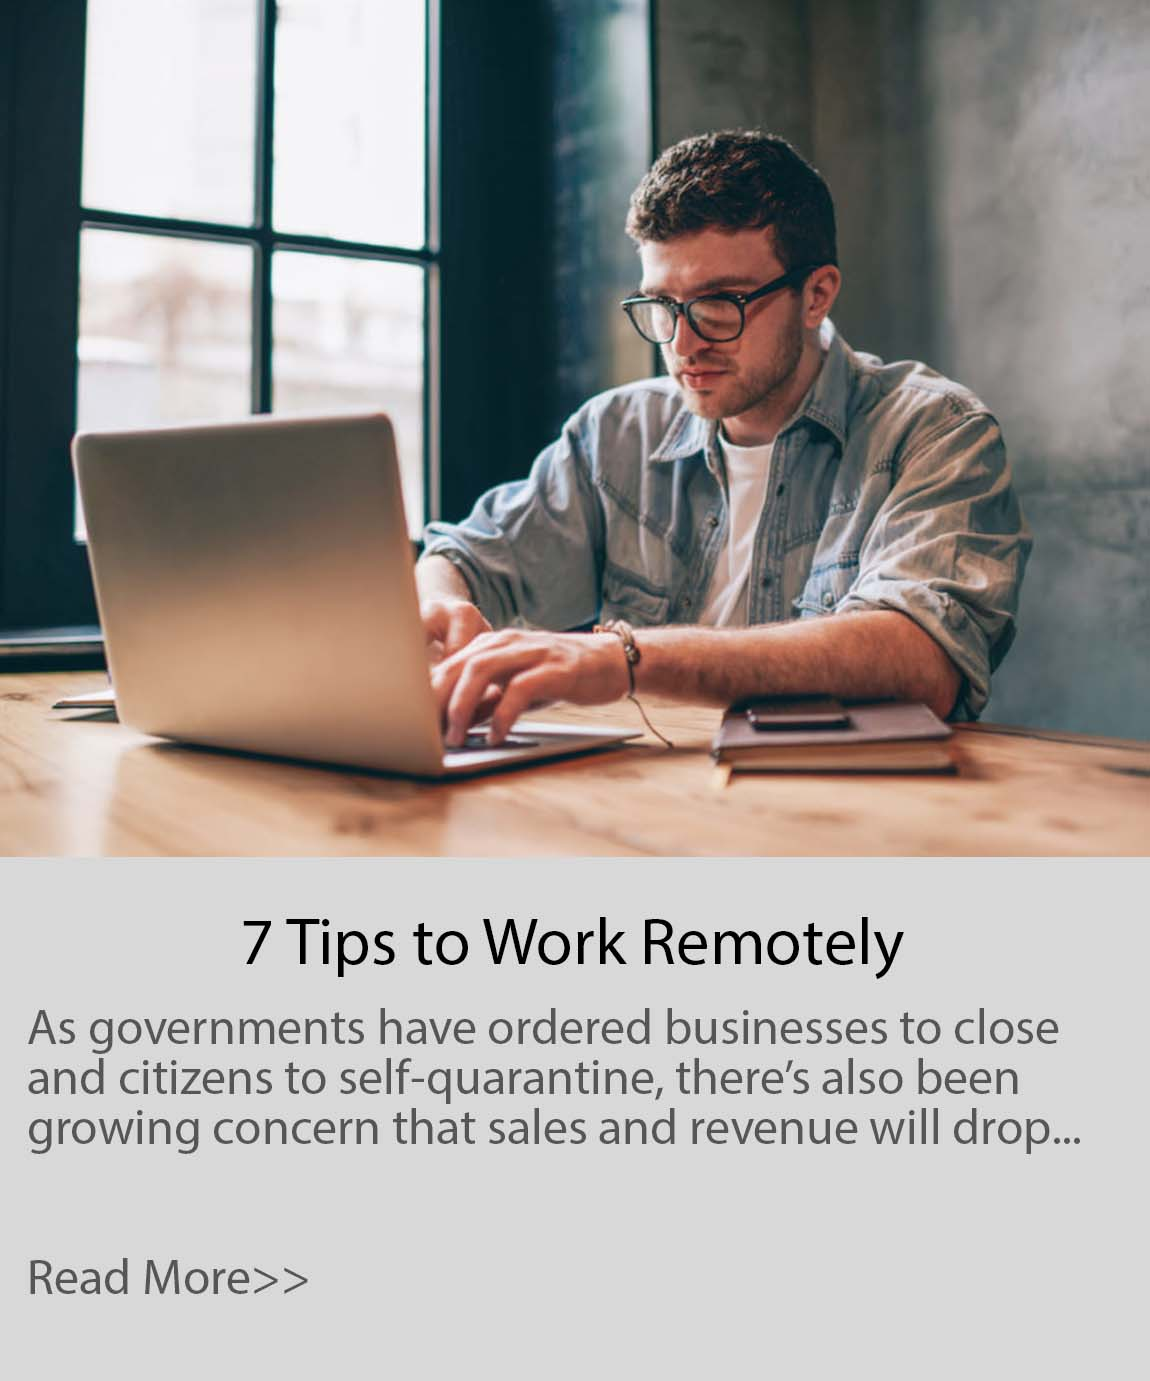 7 tips to work remotely during pandemic